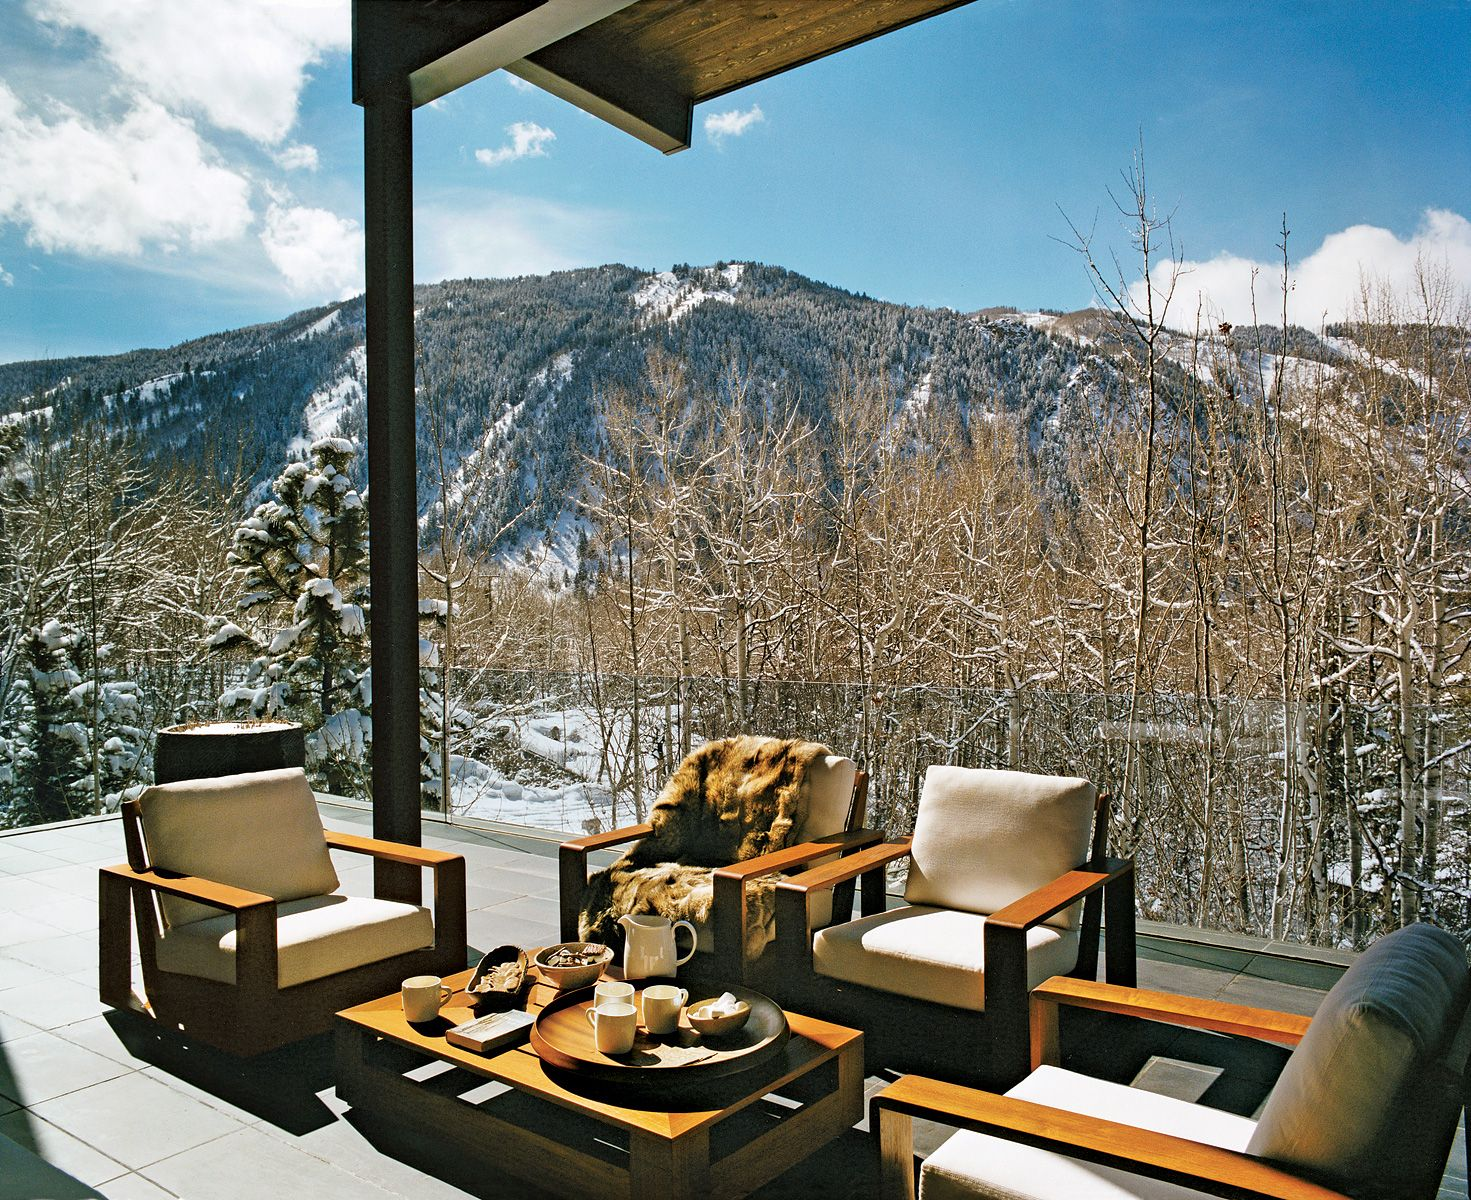 The semi covered deck furnished with david sutherland teak lounge aerin lauders aspen home the semi covered deck furnished with david sutherland teak lounge chairs and coffee table with provisions for hot chocolate geotapseo Choice Image